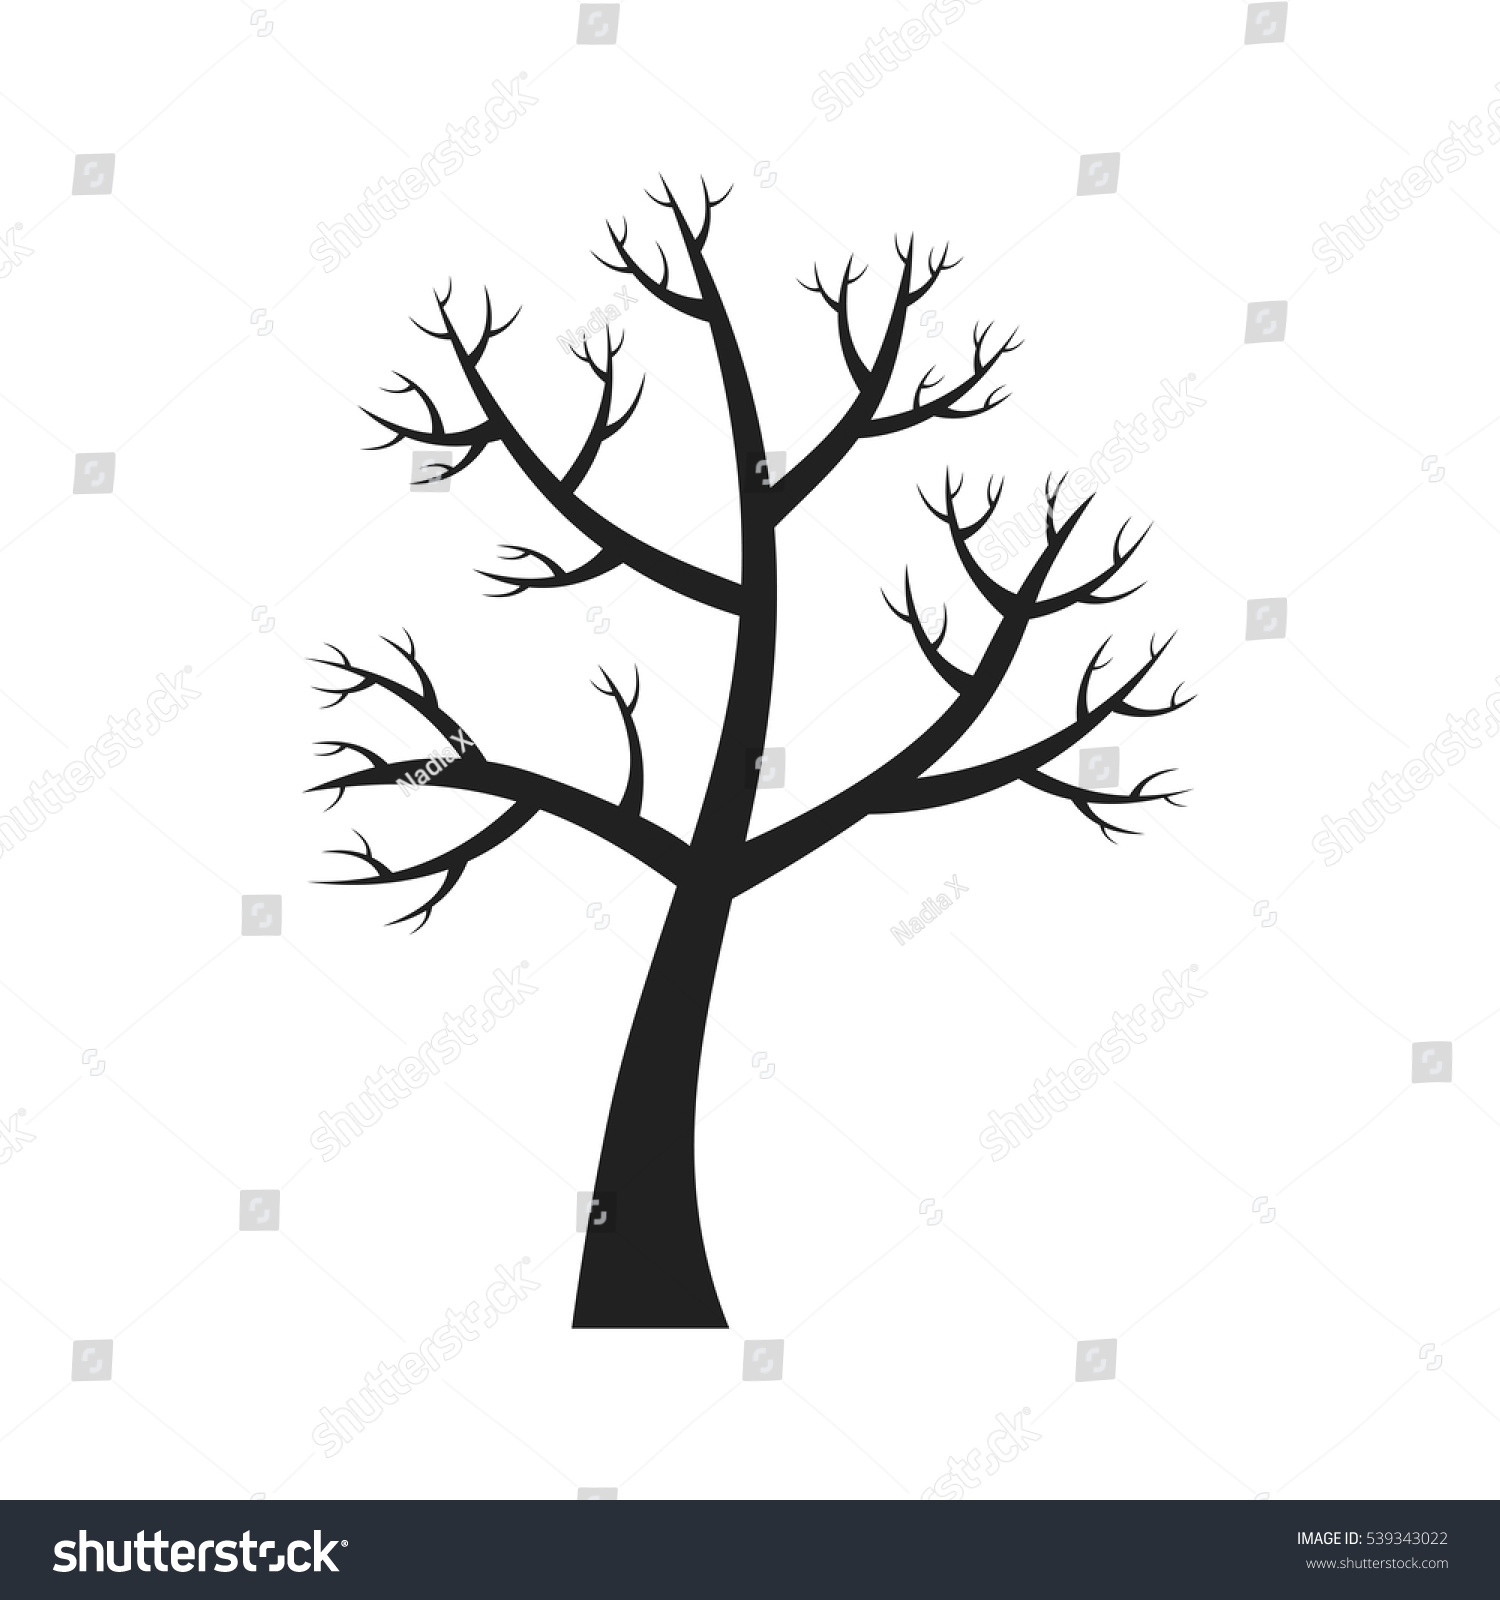 Vector Cartoon Flat Style Isolated Illustration Stock Vector Royalty Free 539343022 Christmas tree in winter forest. https www shutterstock com image vector vector cartoon flat style isolated illustration 539343022